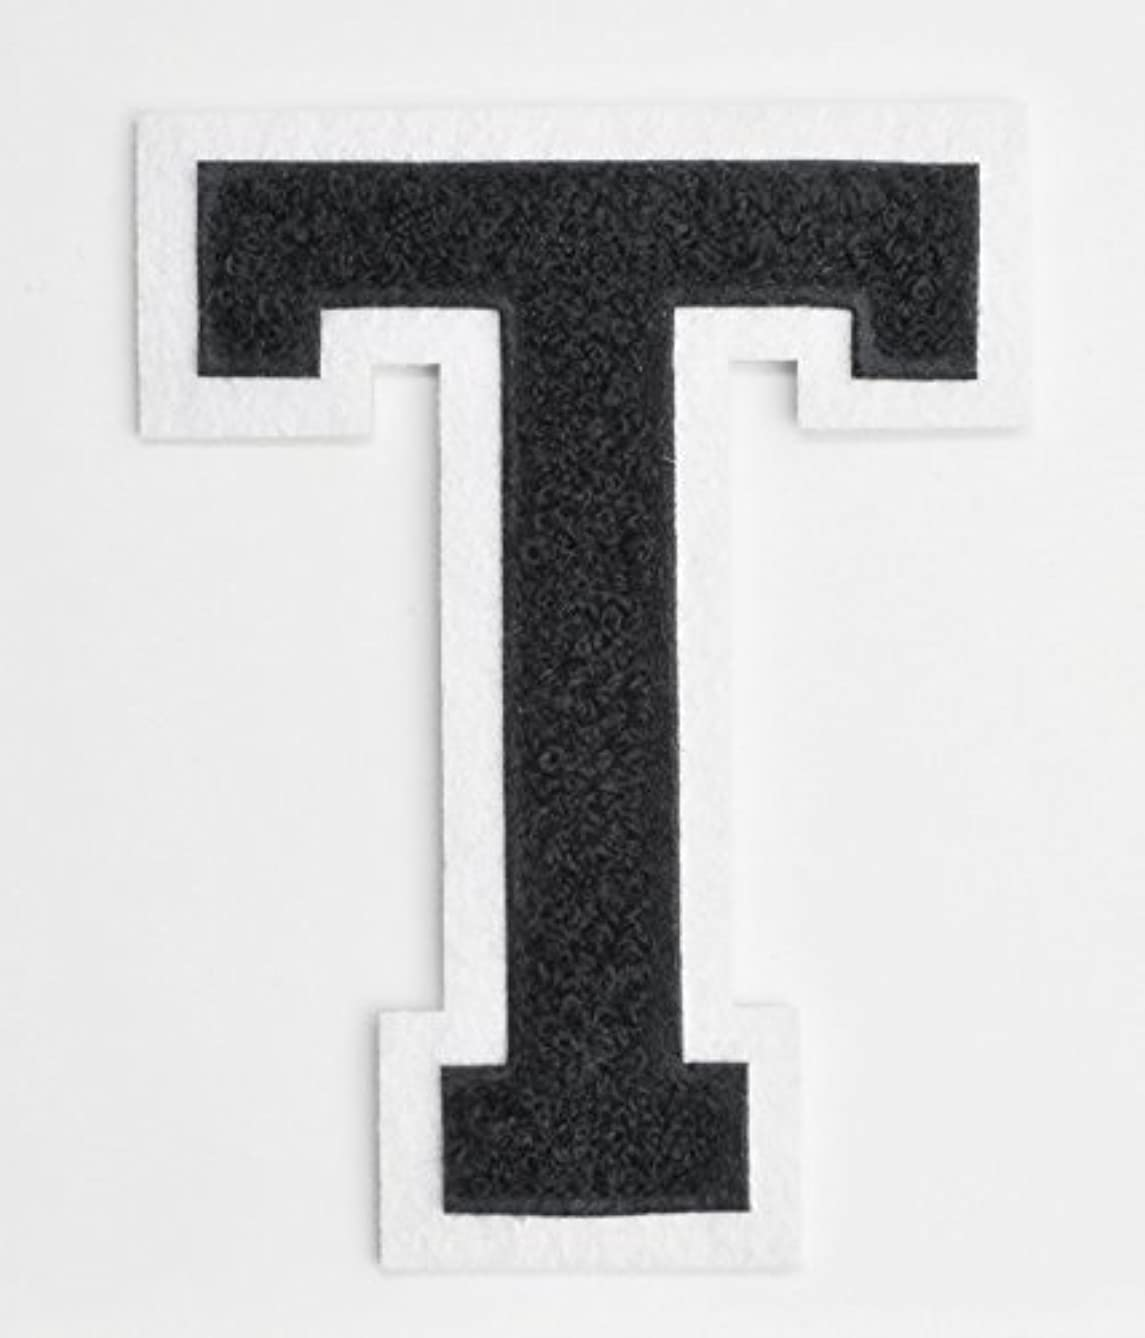 Varsity Letter Patches - Black Embroidered Chenille Letterman Patch - 4 1/2 inch Iron-On Letter Initials (Black, Letter T Patch)